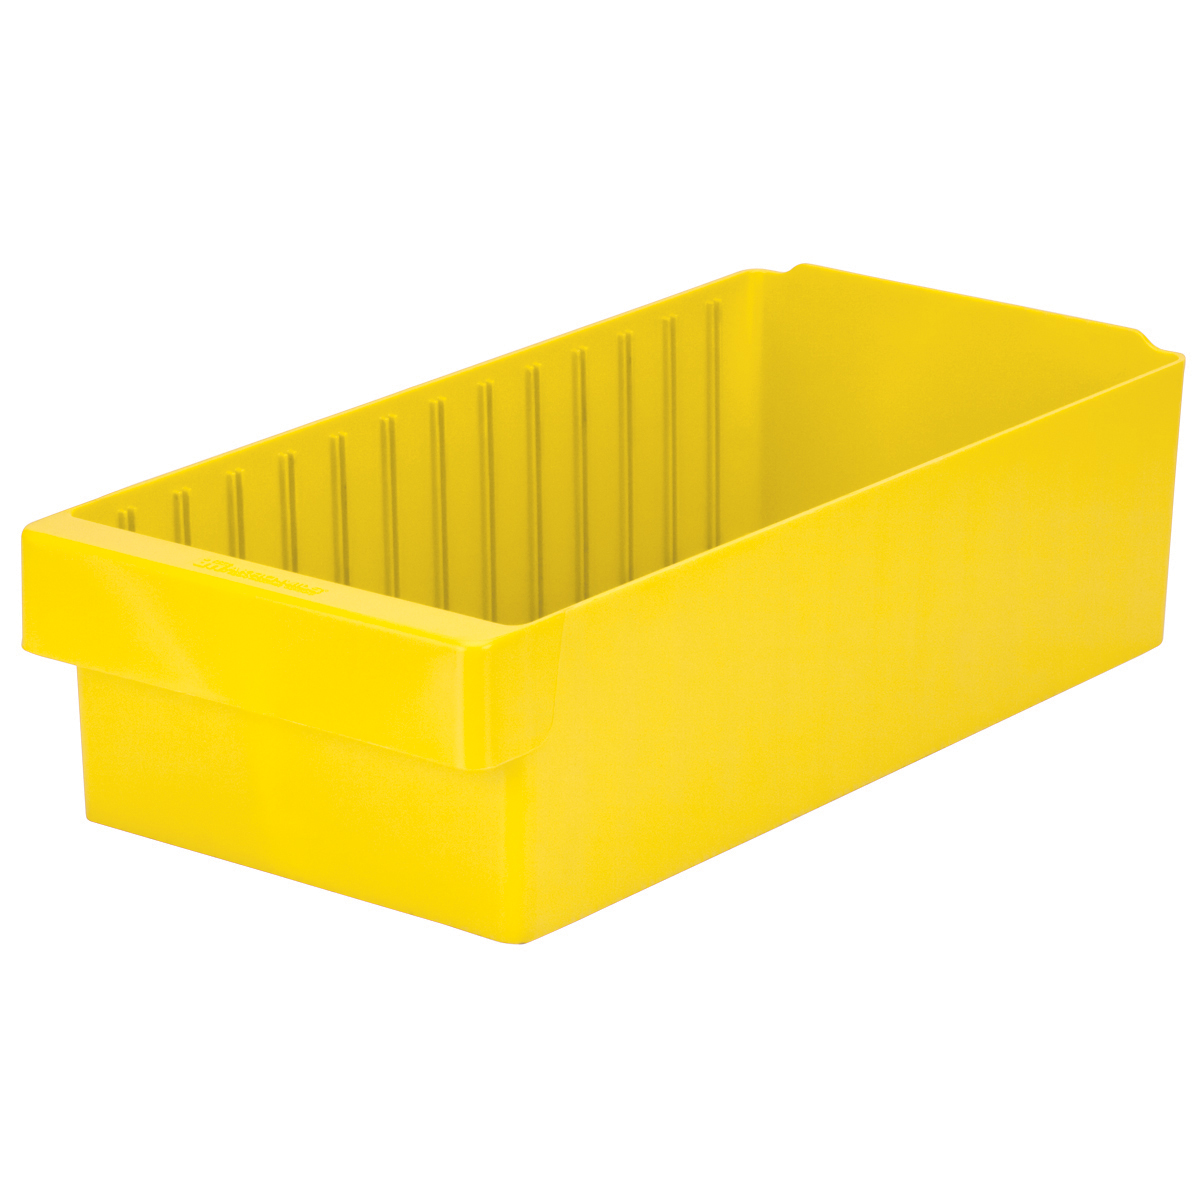 AkroDrawer 17-5/8 x 8-3/8 x 4-5/8, Yellow (31188YEL).  This item sold in carton quantities of 4.